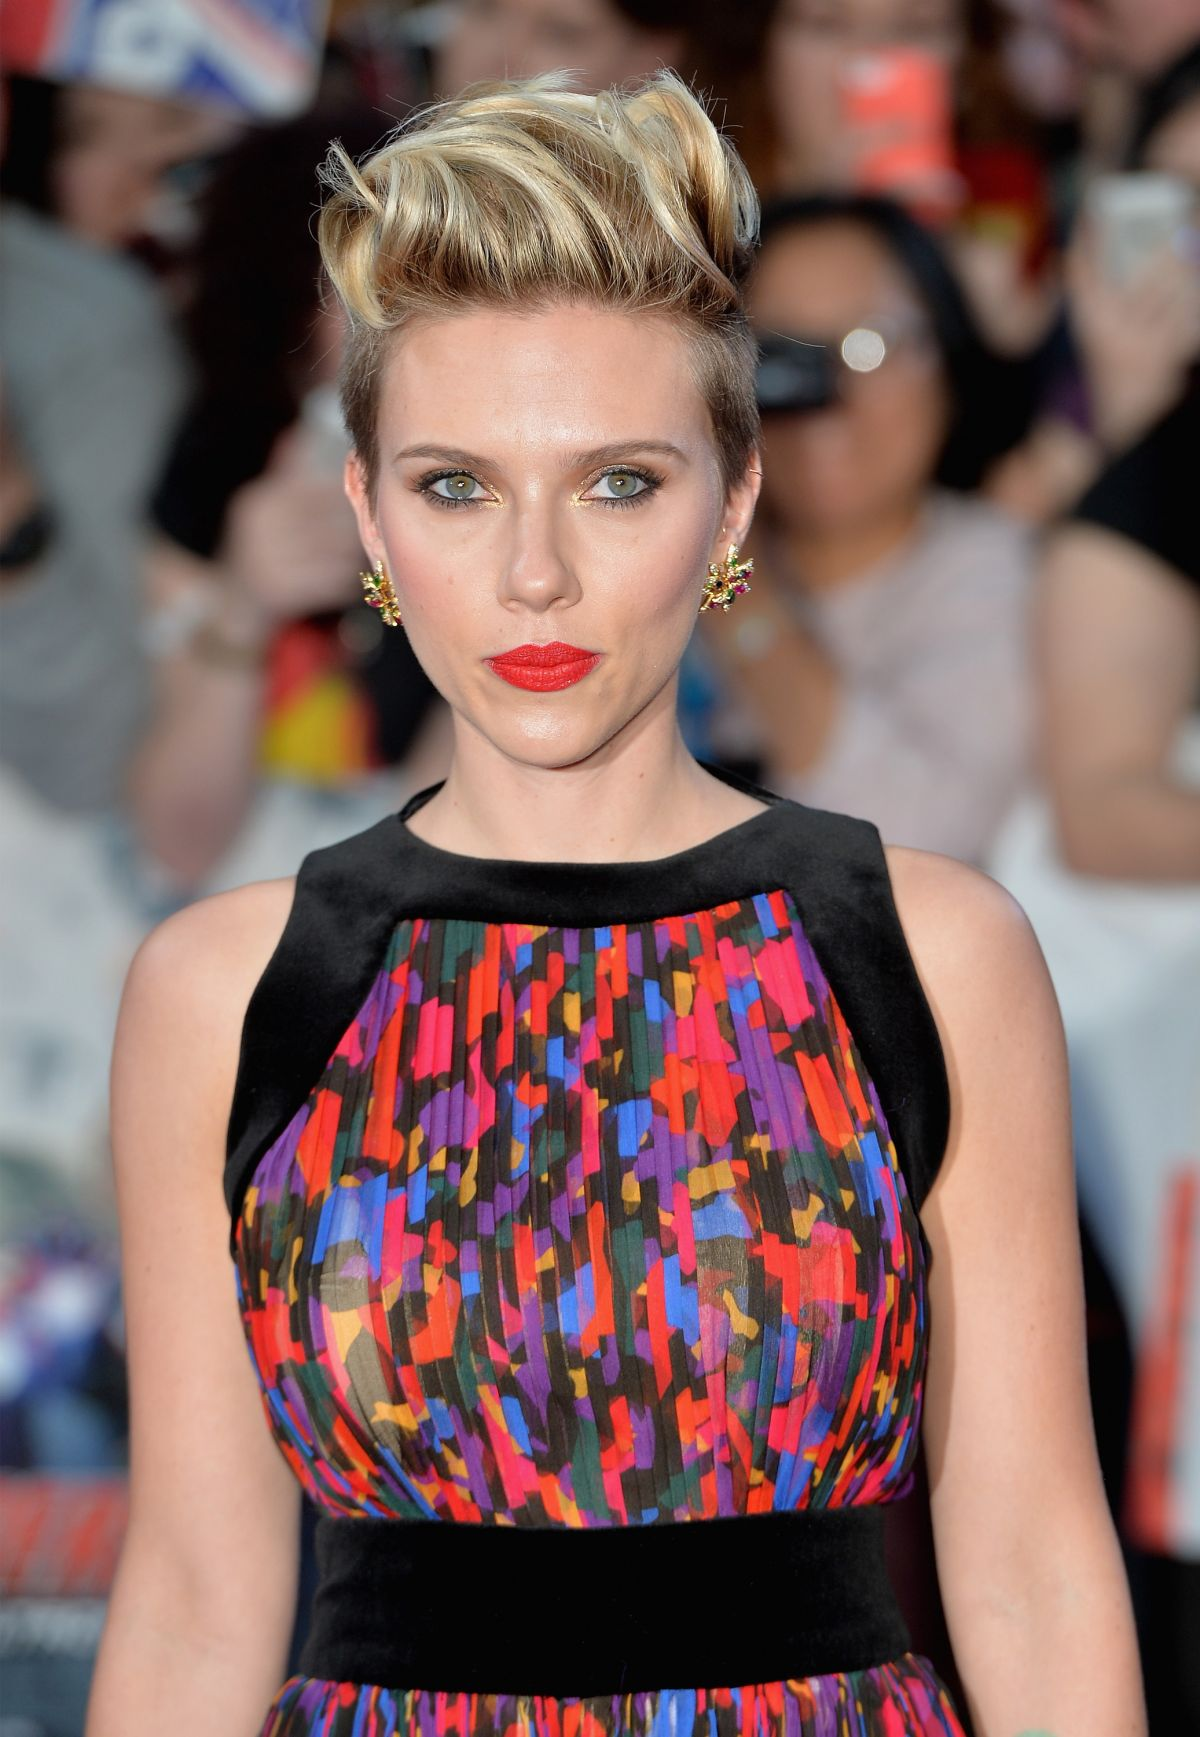 SCARLETT JOHANSSON at Avengers: Age of Ultron Premiere in London